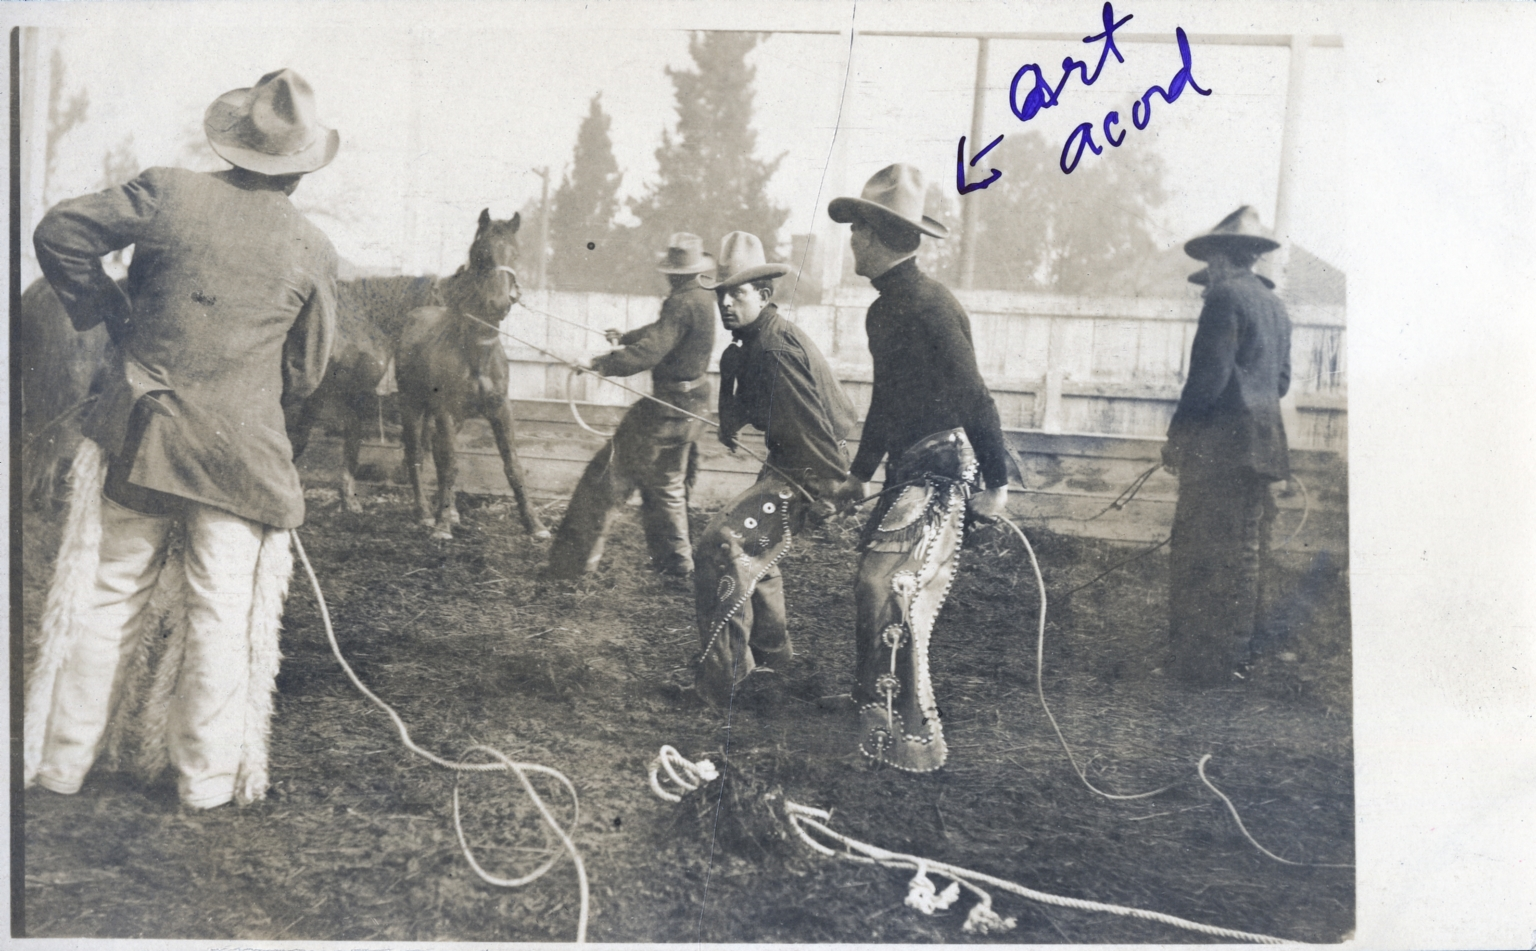 Art Acord and others roping horses